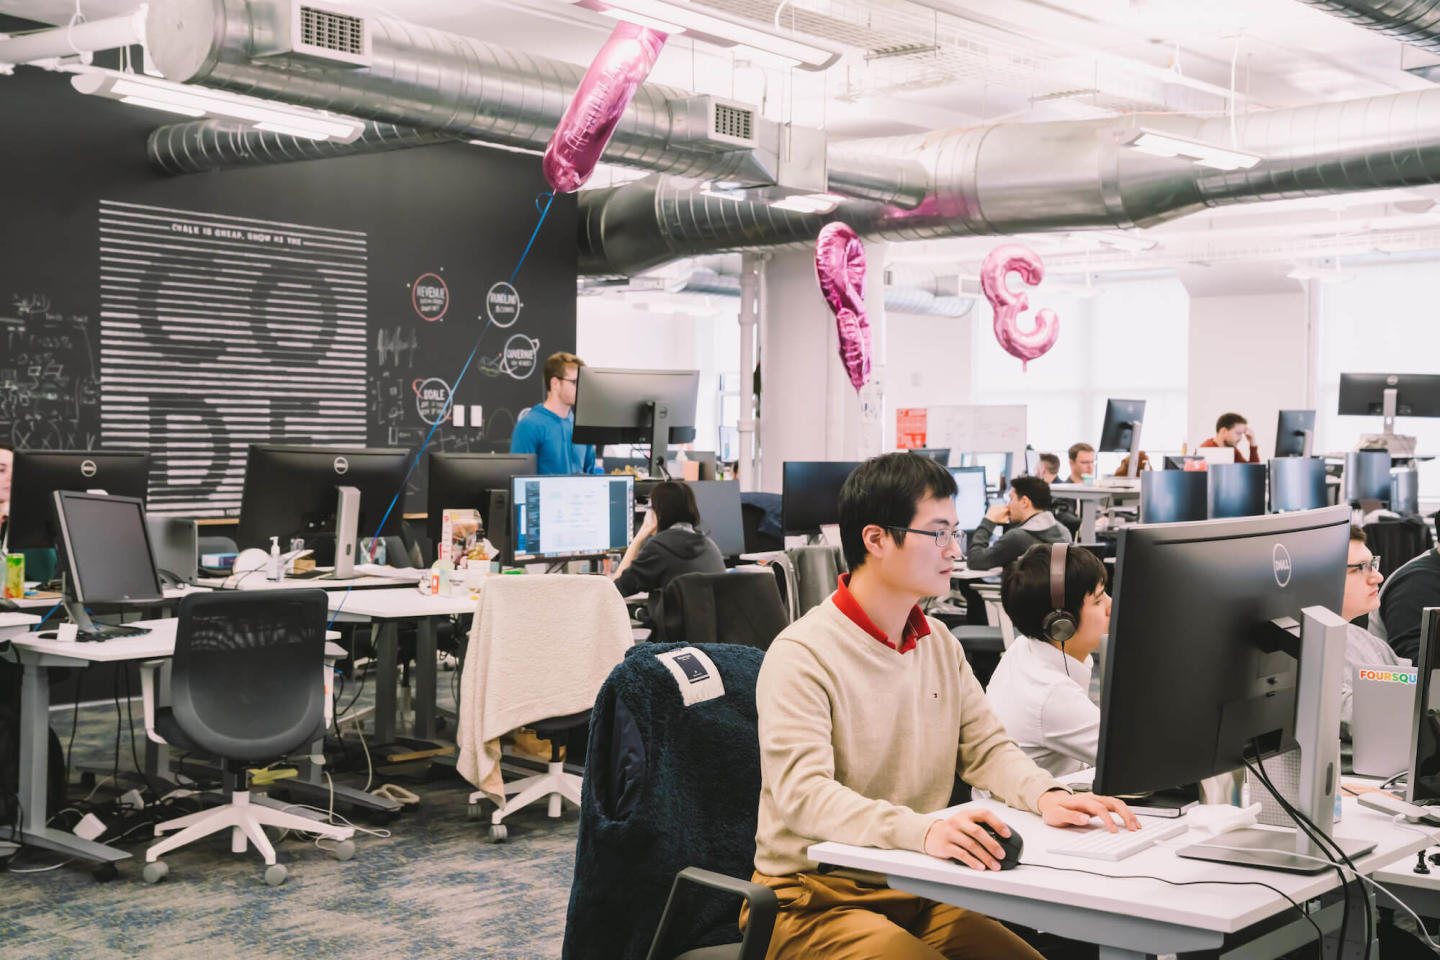 An image of many engineers in an office with pink balloons